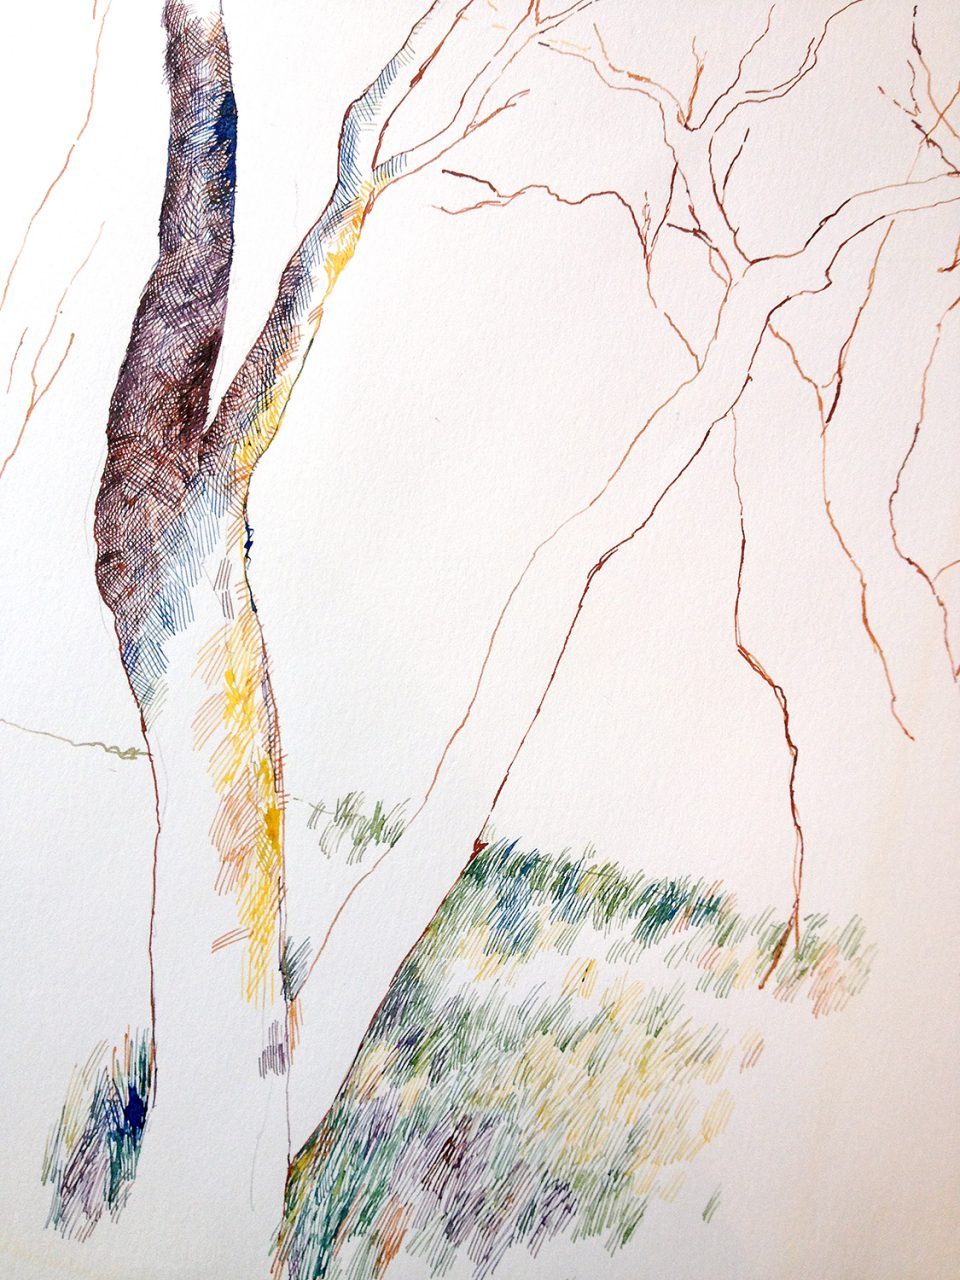 Unfinished drawing of tree trunks and grass made with colored inks, 1990